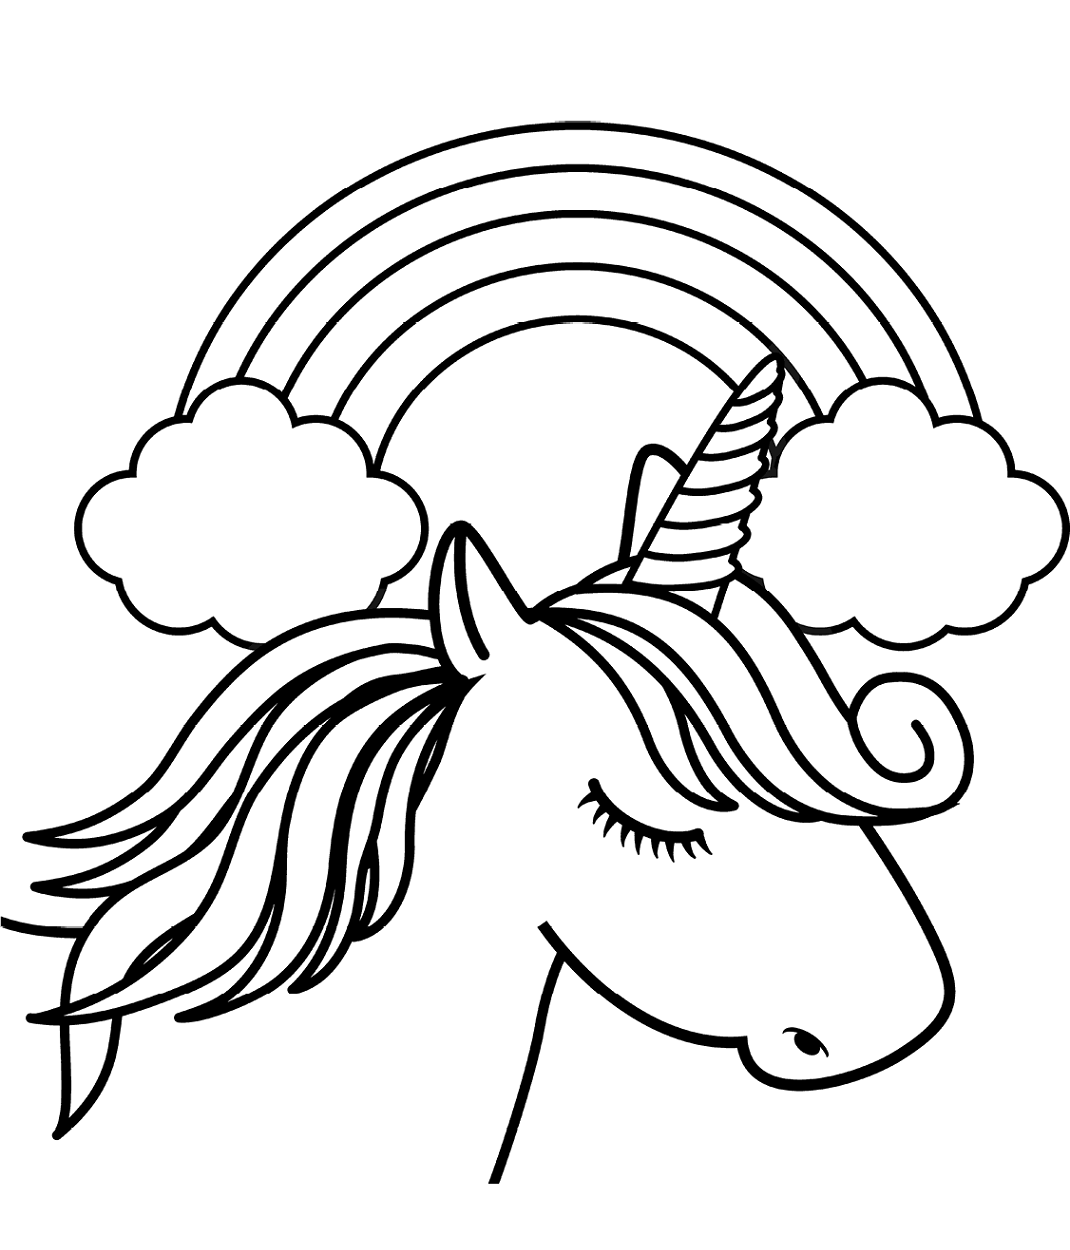 Coloring Pages Unicorn Head In Front Of Rainbow Coloring Page Free Printable Awesomees To Color